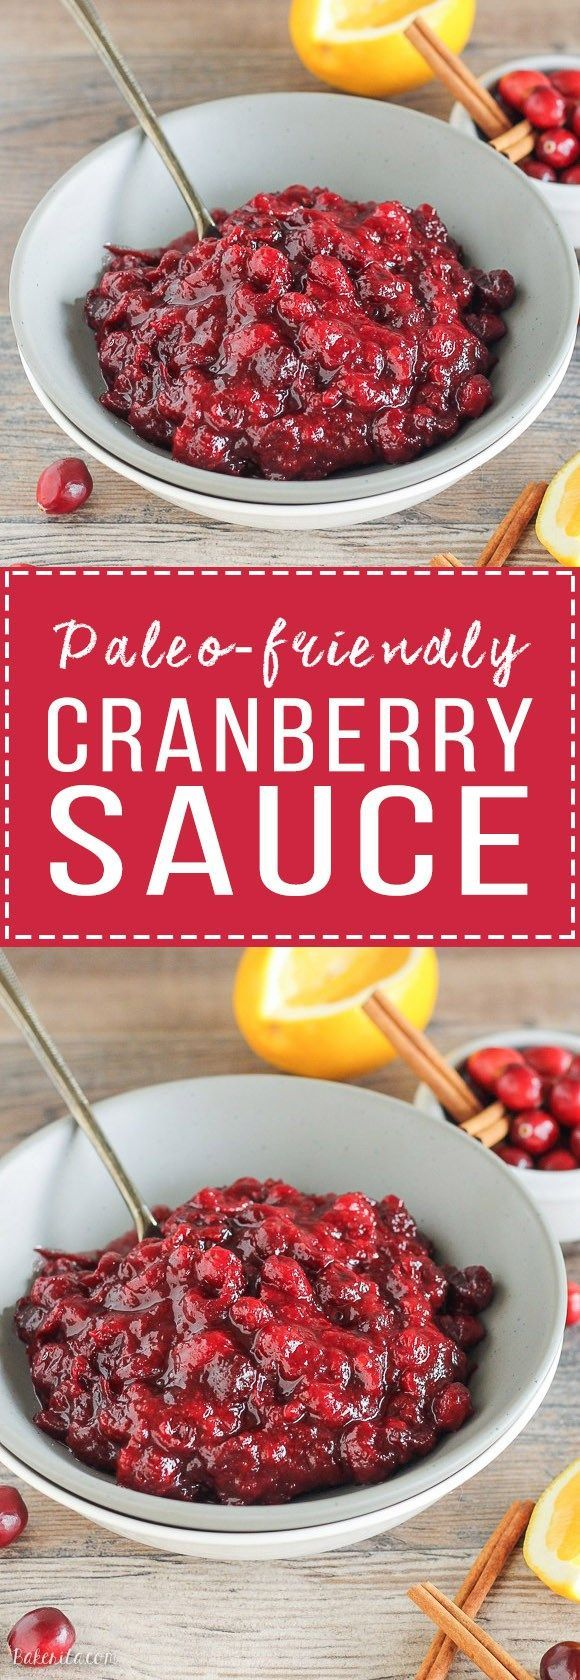 This Paleo Cranberry Sauce is sweetened with maple syrup to keep it refined sugar free. Orange zest and warm spices give this cranberry sauce incredible flavor, and it's done in 15 minutes.